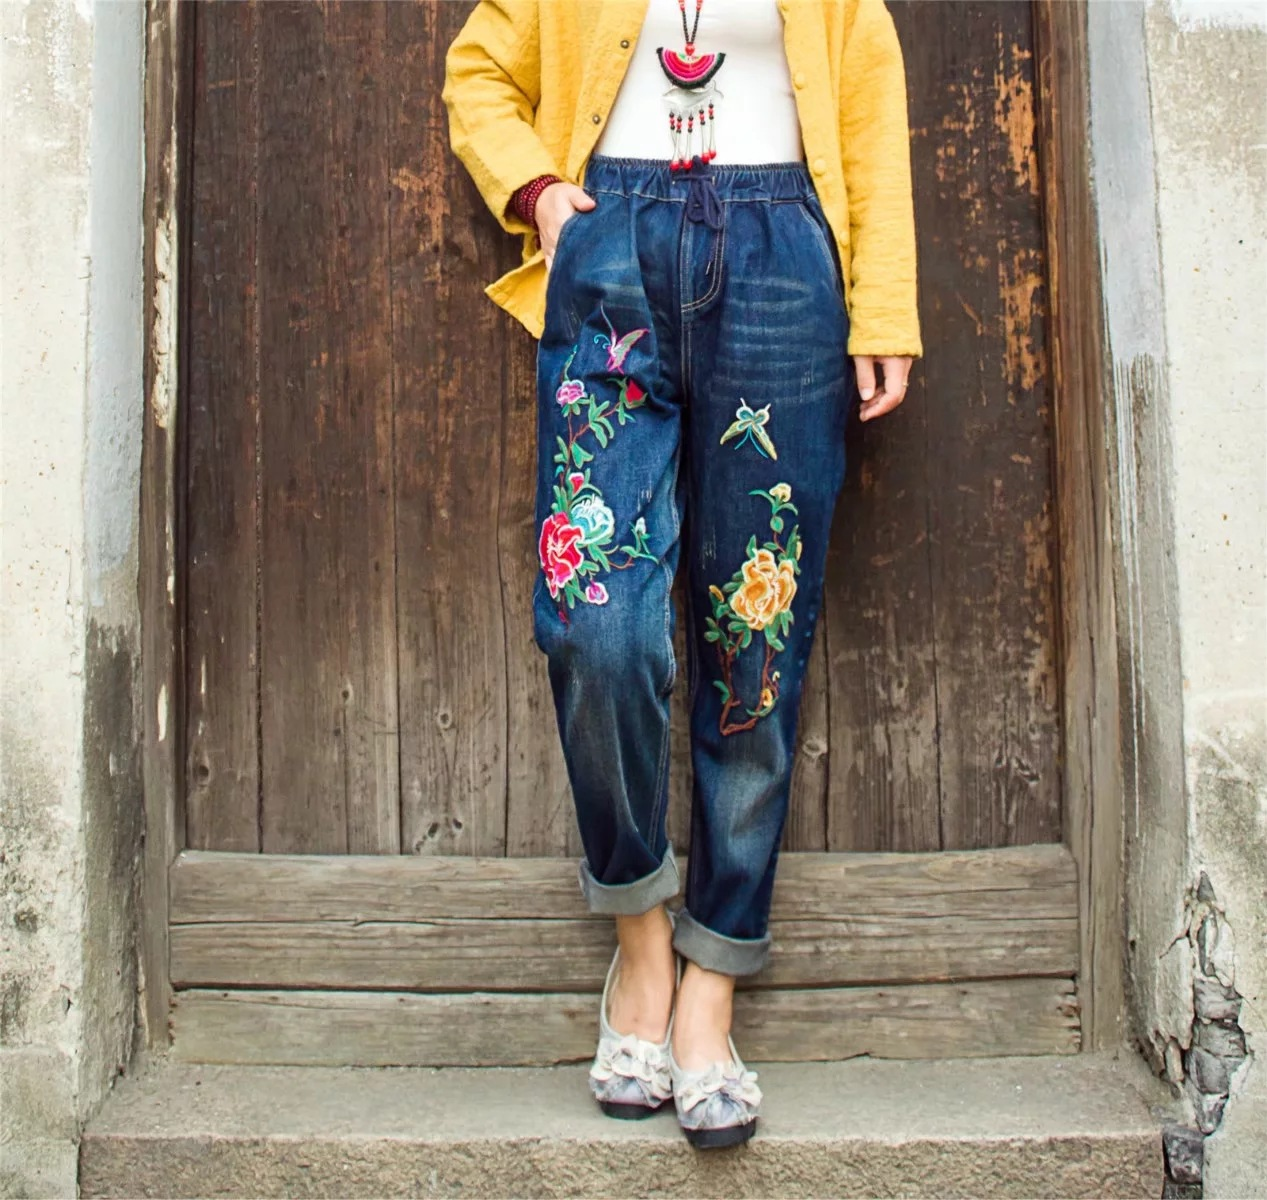 2020 spring new national style literature peony embroidery drawstring elastic waist casual jeans trousers female